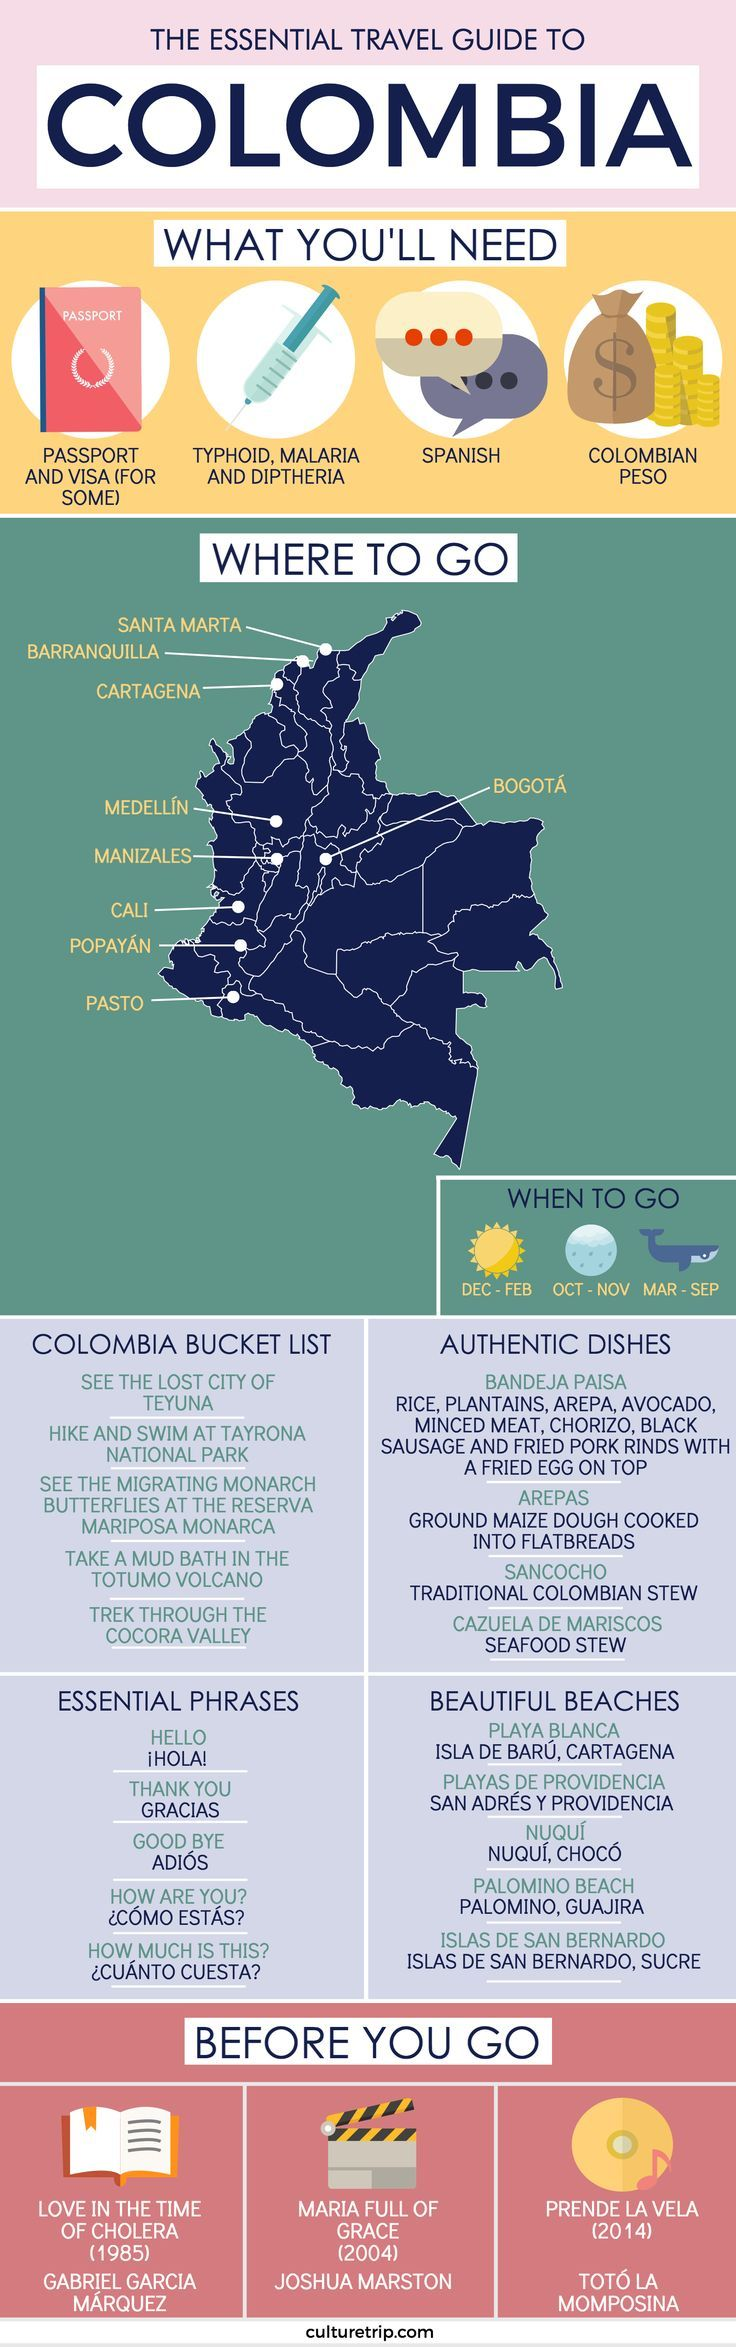 From the best dishes to try to useful phrases, here's Culture Trip's essential travel guide to Colombia.